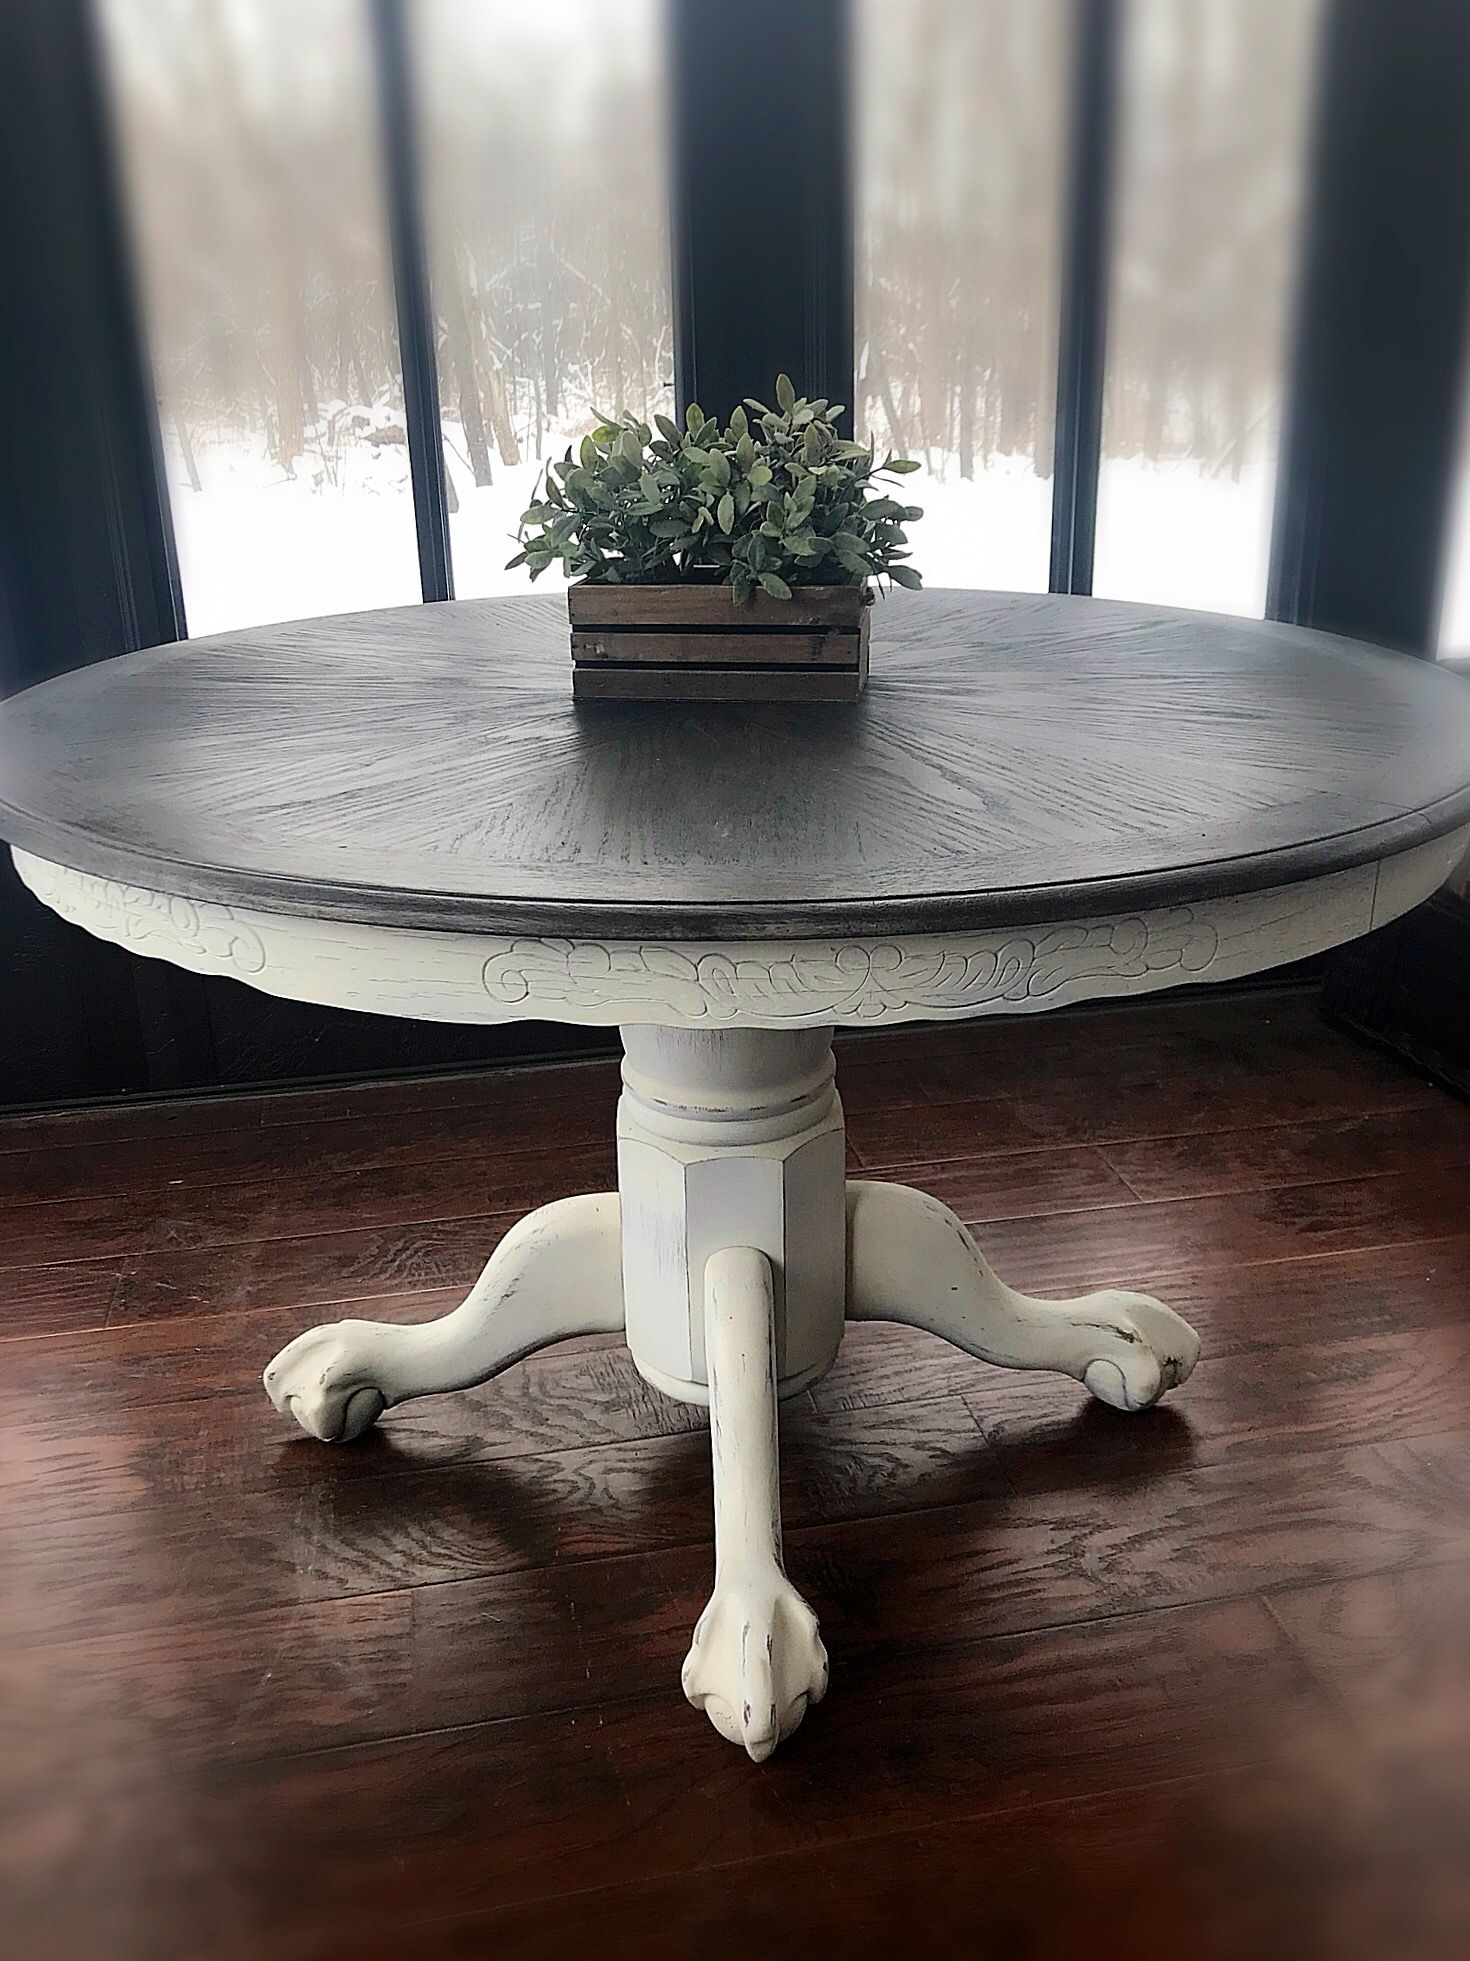 vintage wooden accent table rustic entryway farmhouse antique country furniture console expandable round kitchen home ornaments extra tall acrylic coffee tray espresso piece set